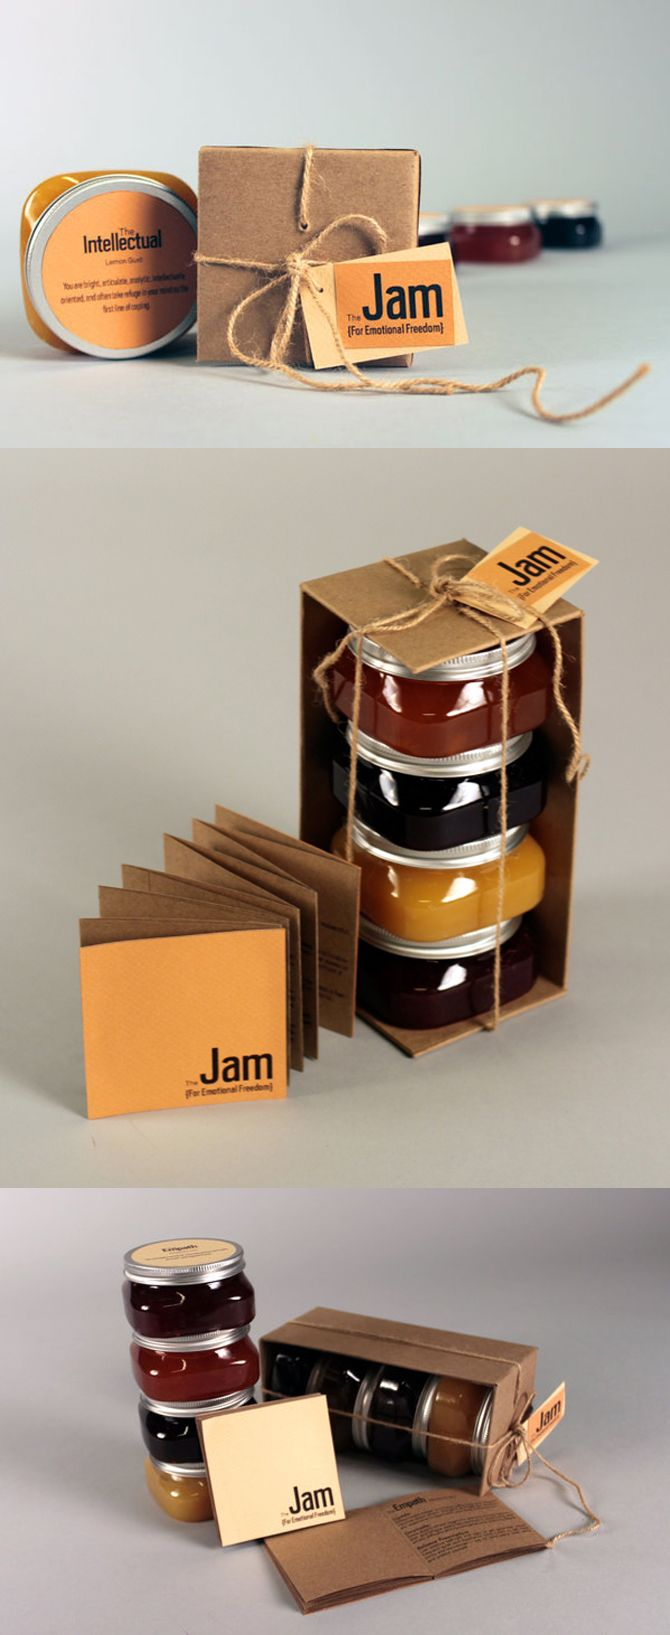 Great simple jam #packaging PD